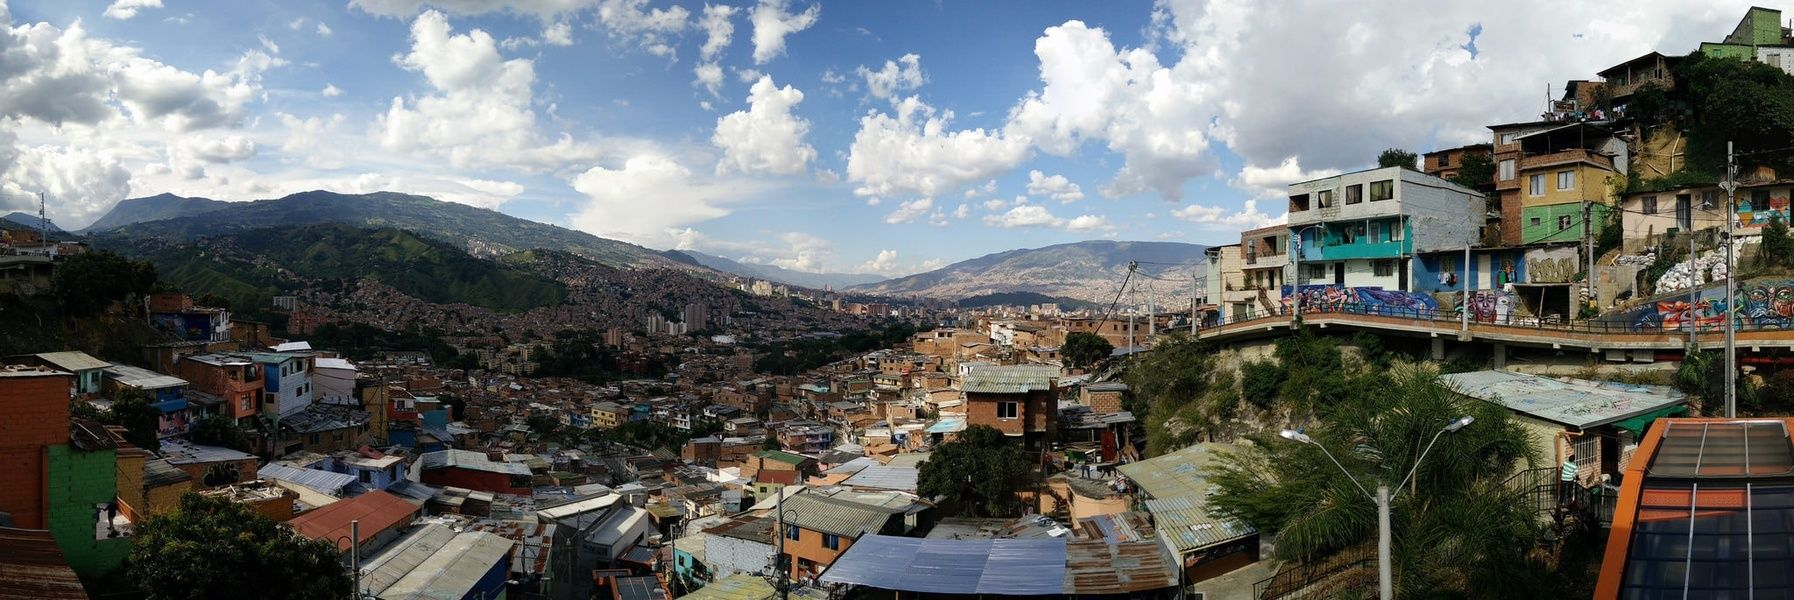 Comuna 13 2 Weeks in Colombia